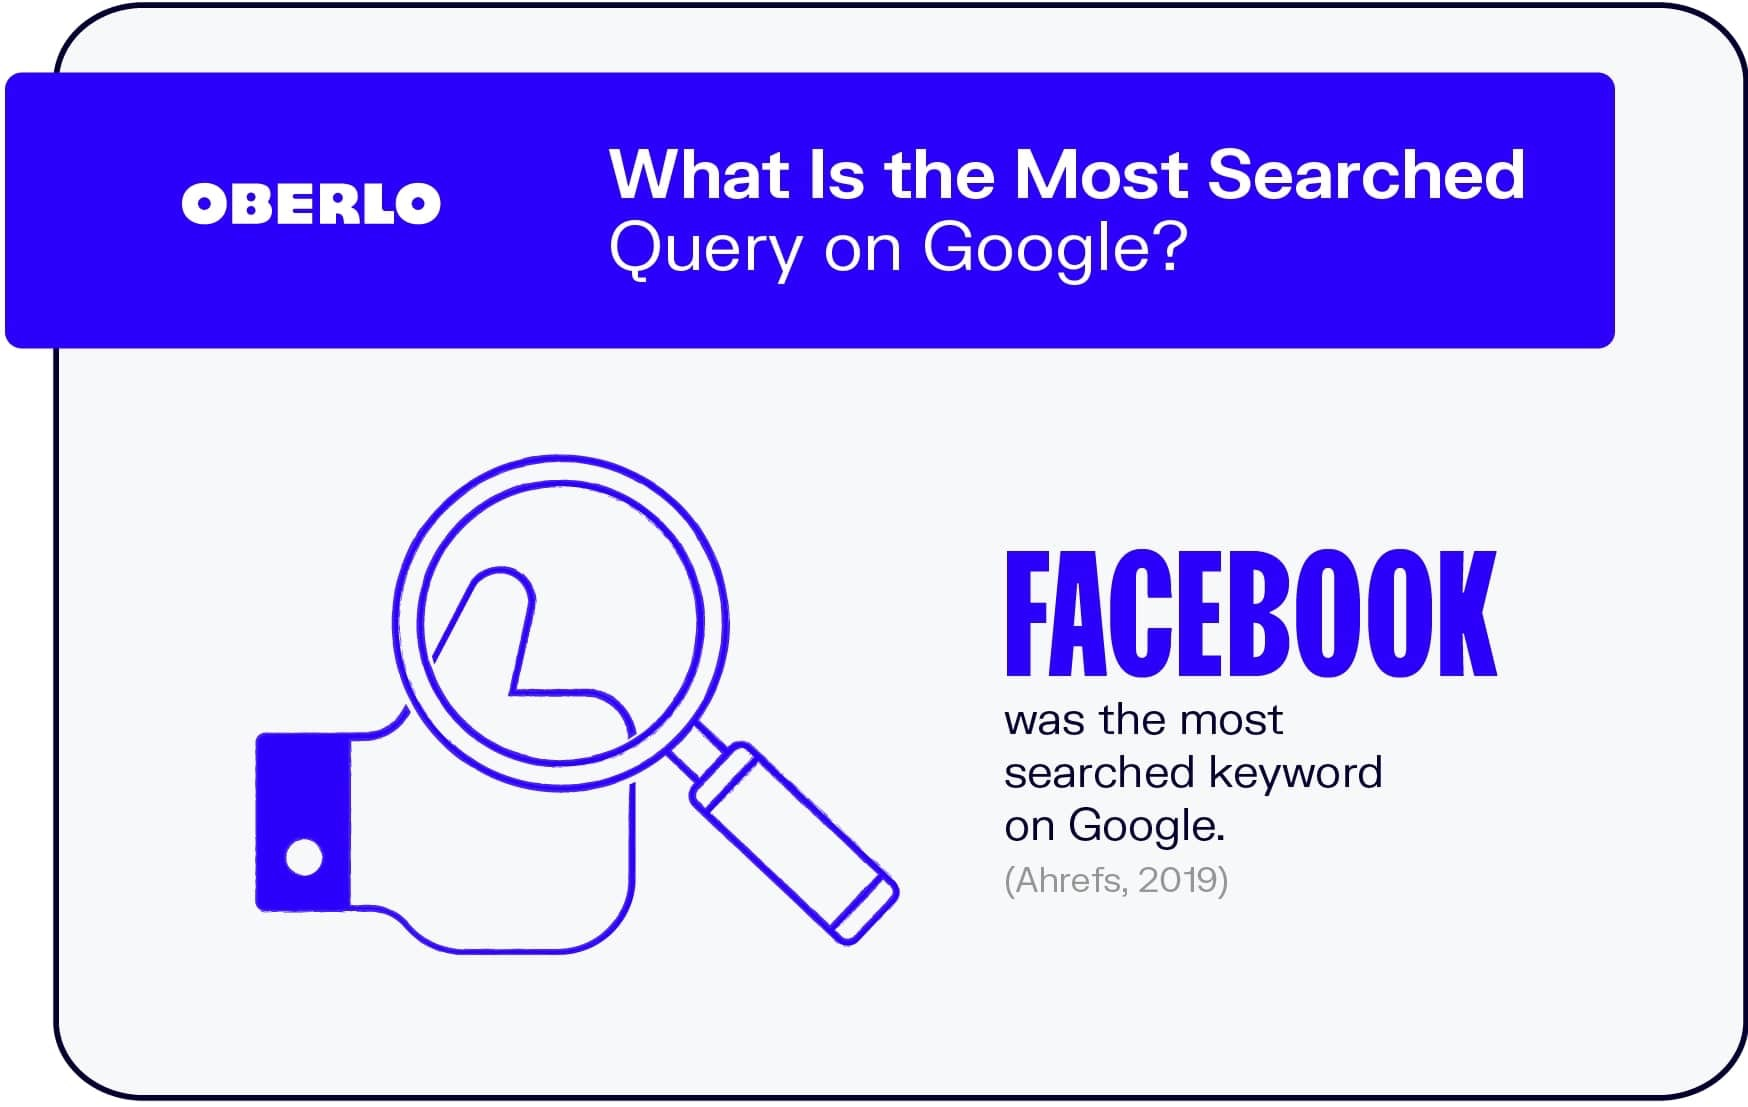 What Is the Most Searched Query on Google?